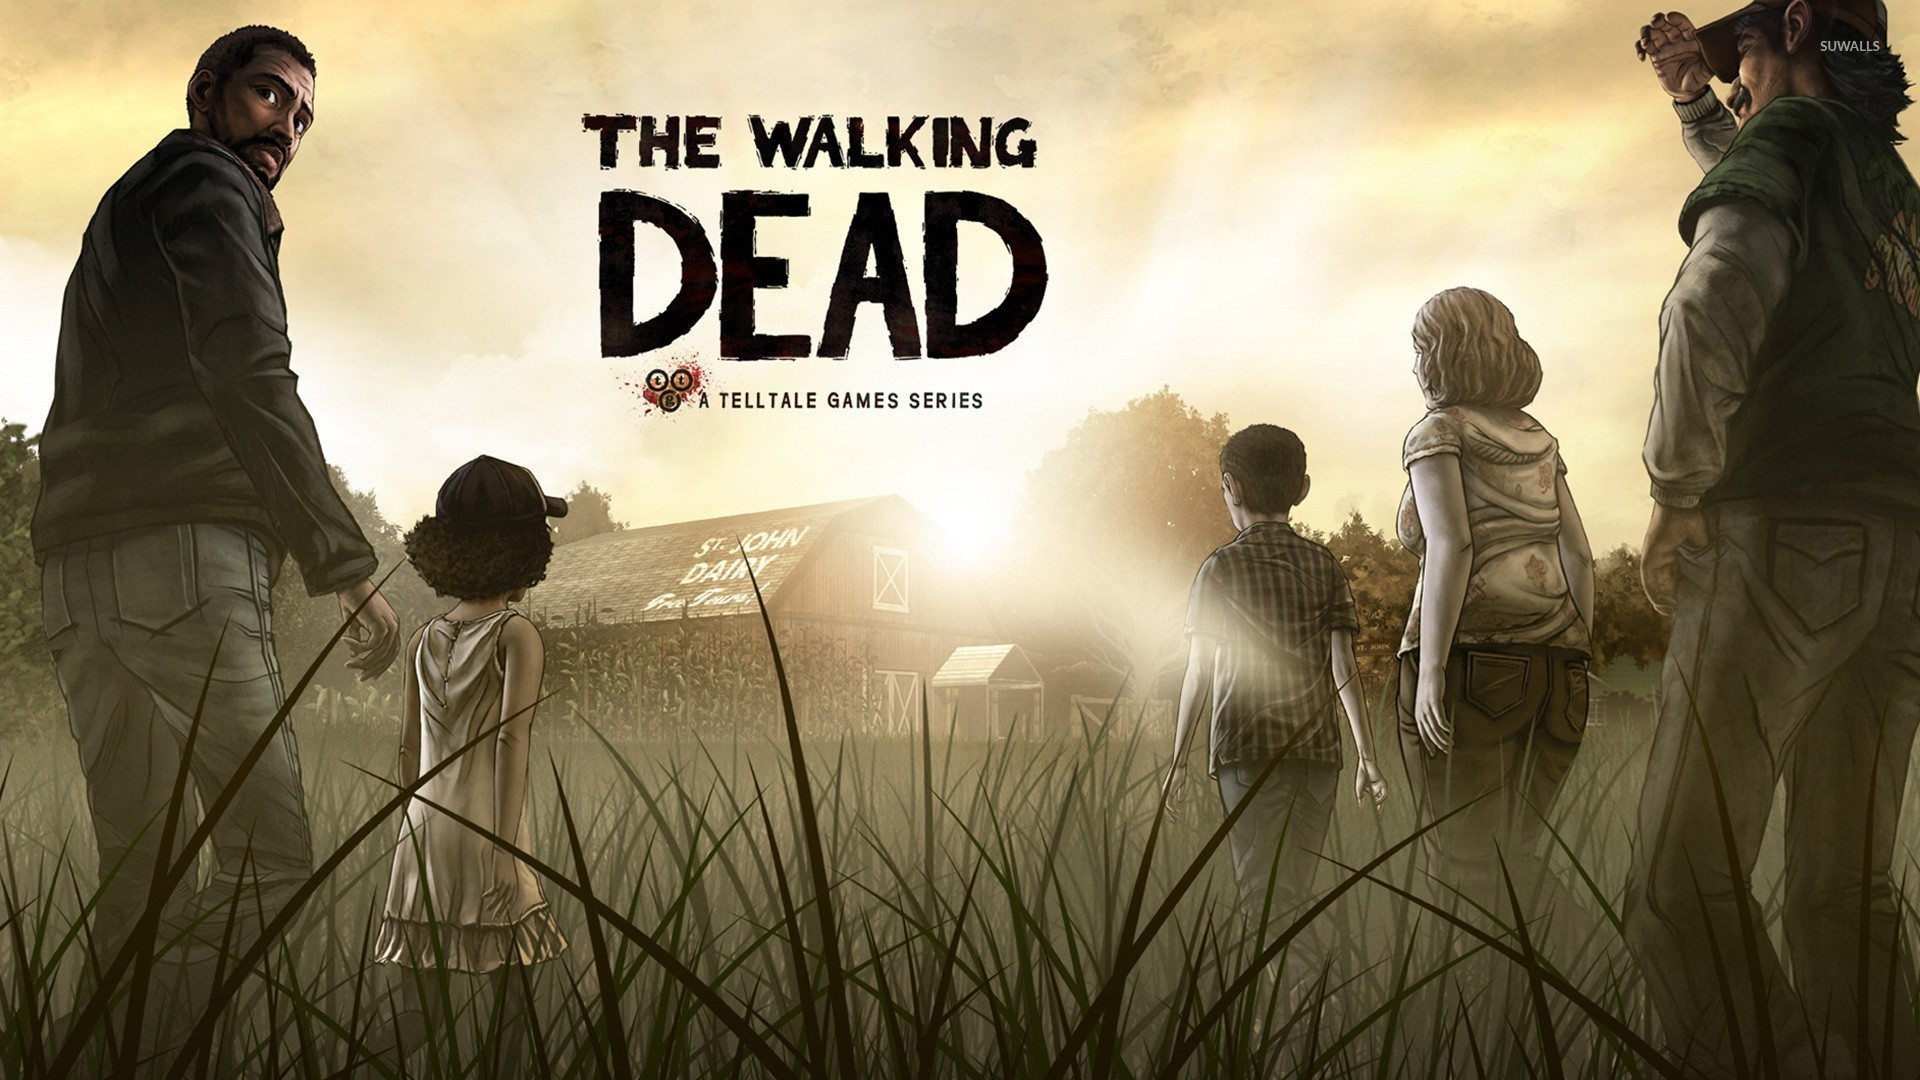 The Walking Dead 13 Wallpaper Game Wallpapers 21078